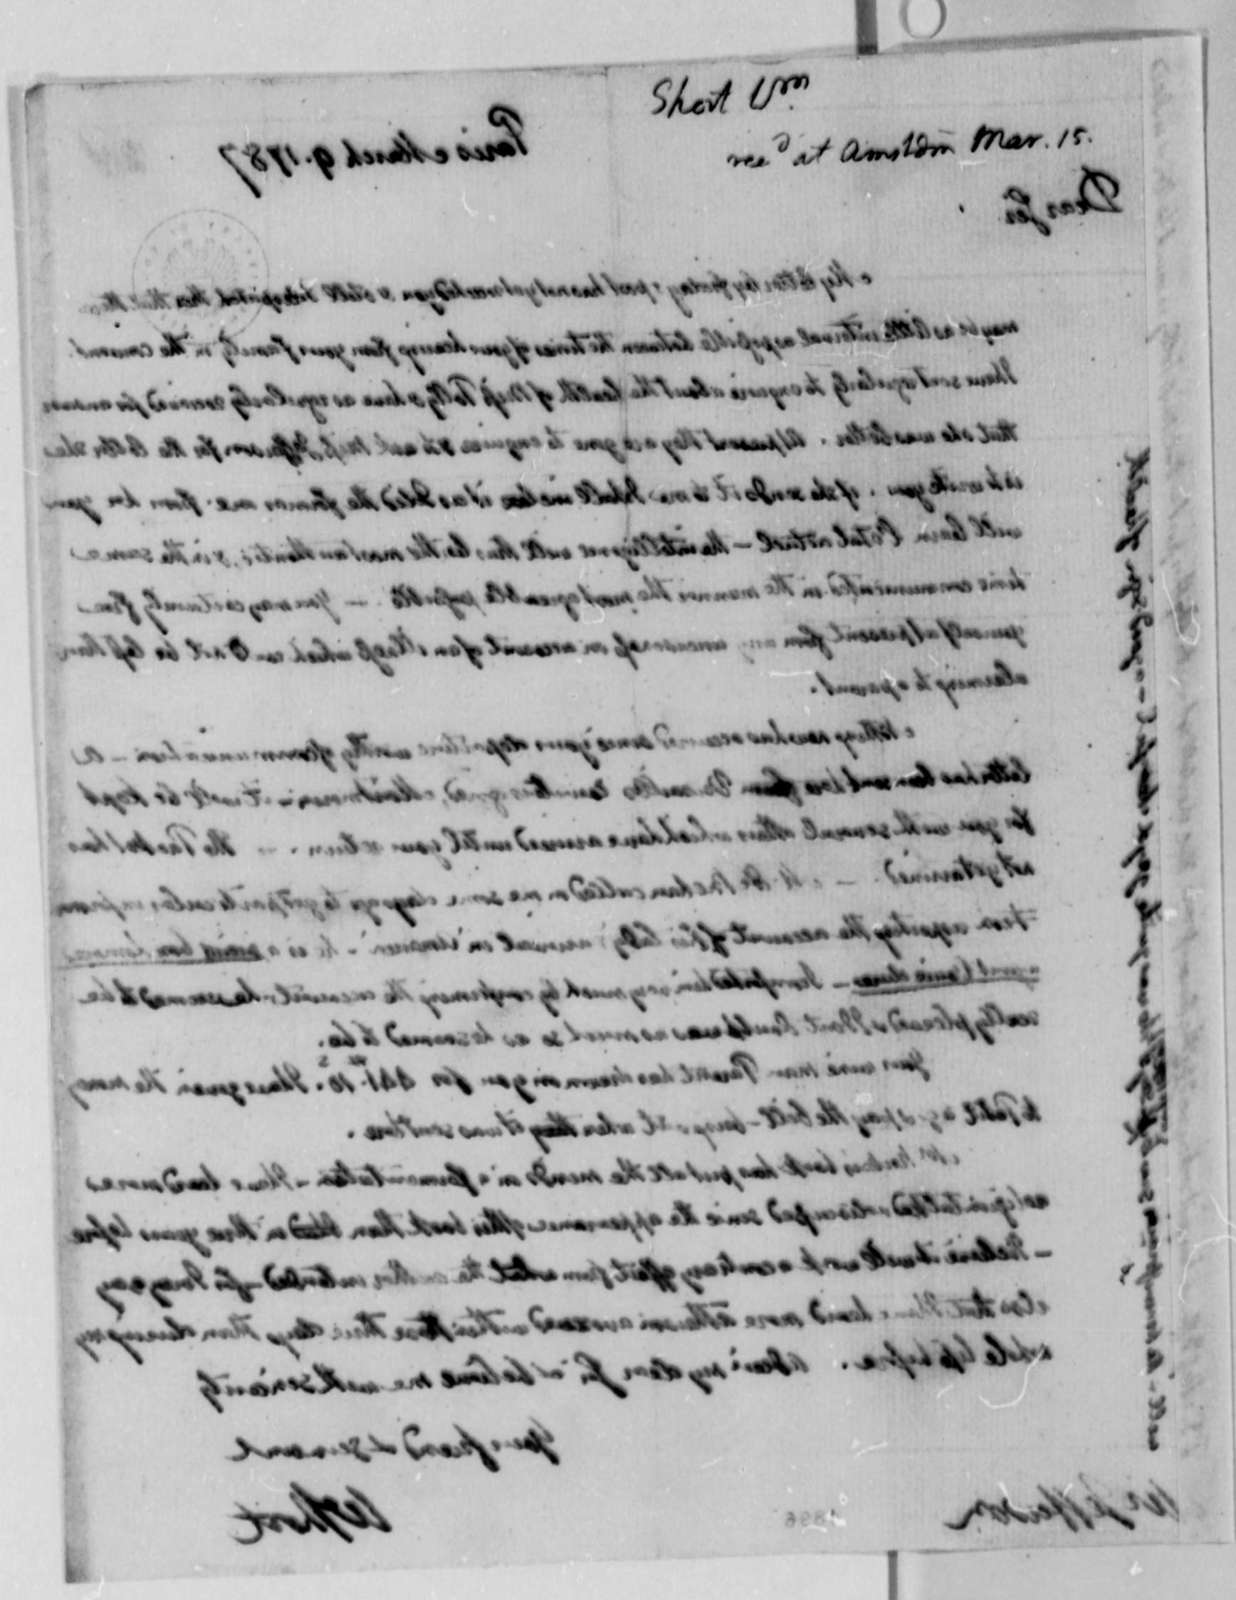 William Short to Thomas Jefferson, March 9, 1787